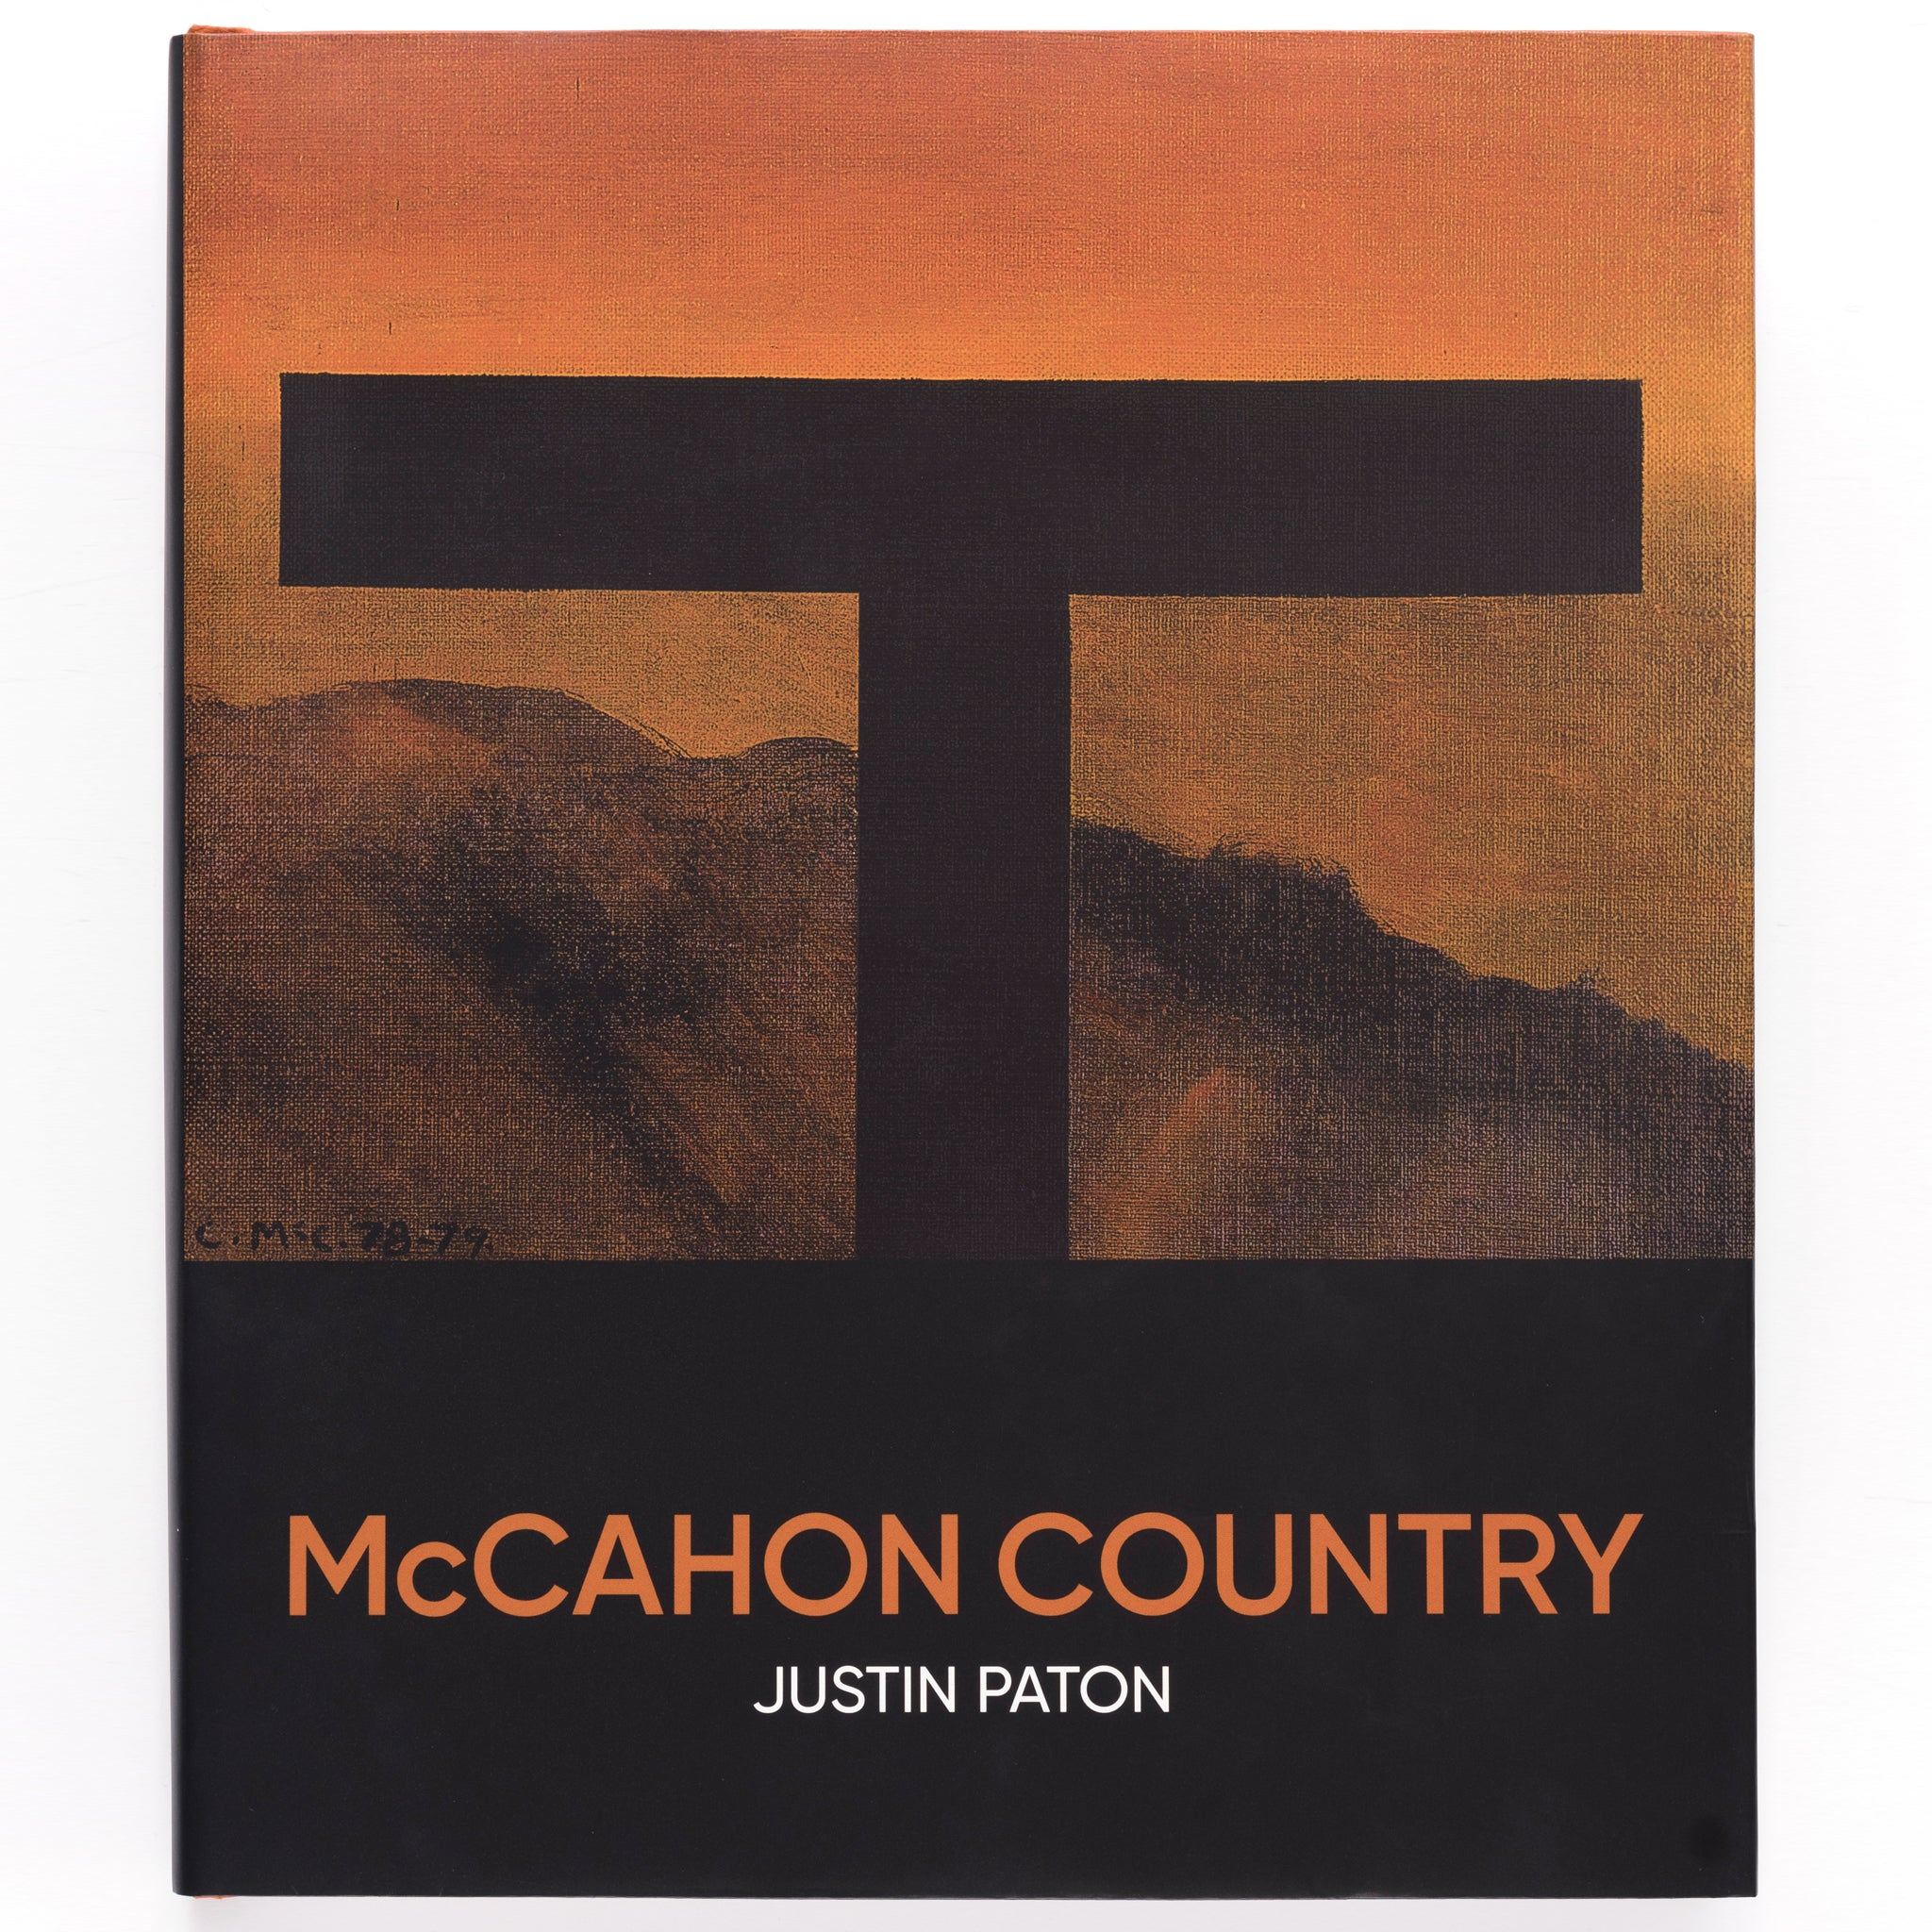 McCahon: Country Image